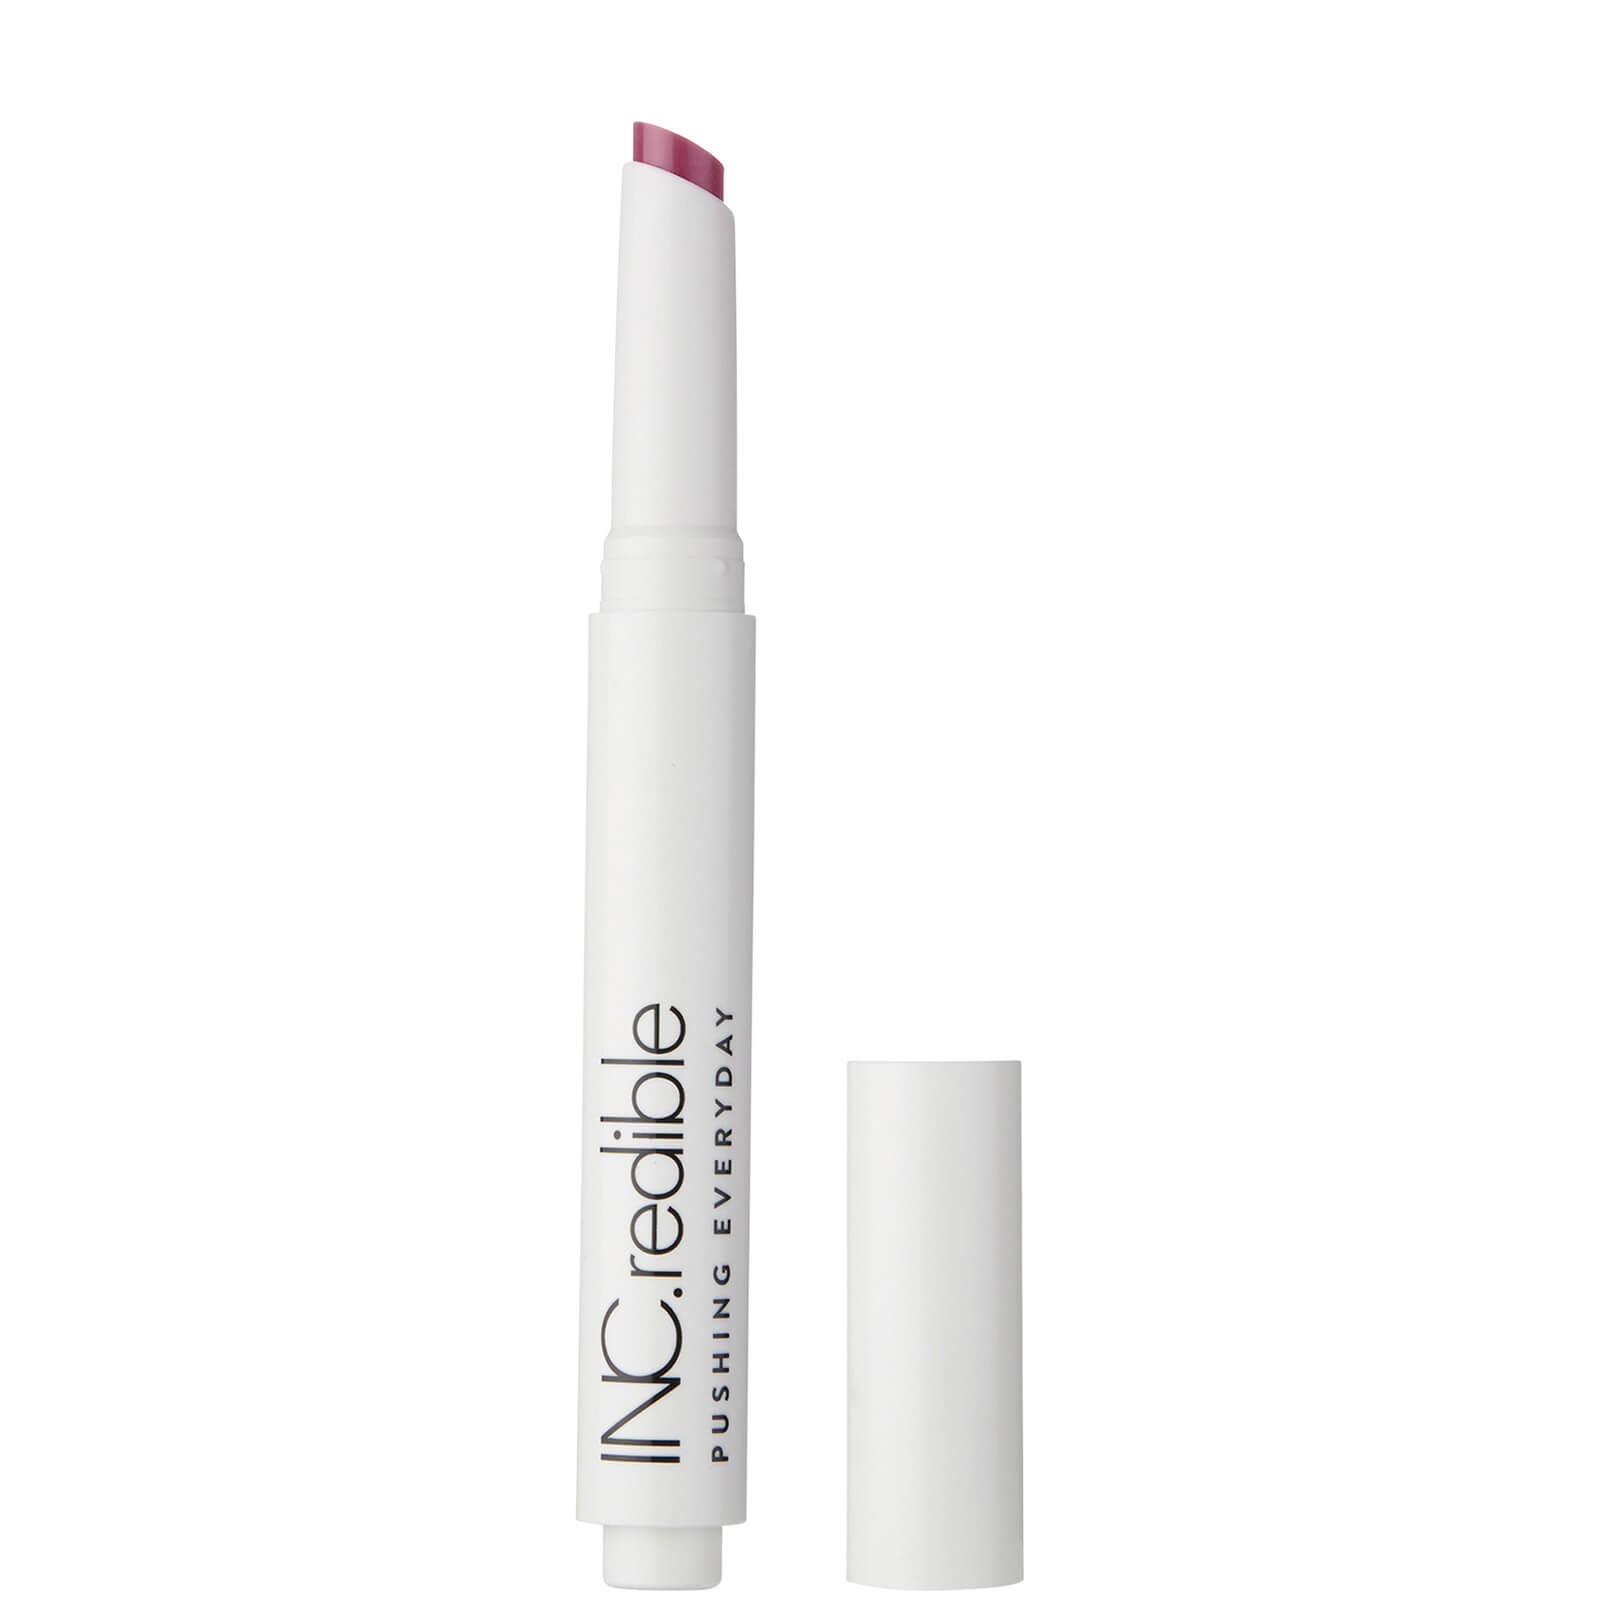 INC.redible Pushing Everyday rossetto semi-mat a pressione (varie tonalità) - Puh-Lease